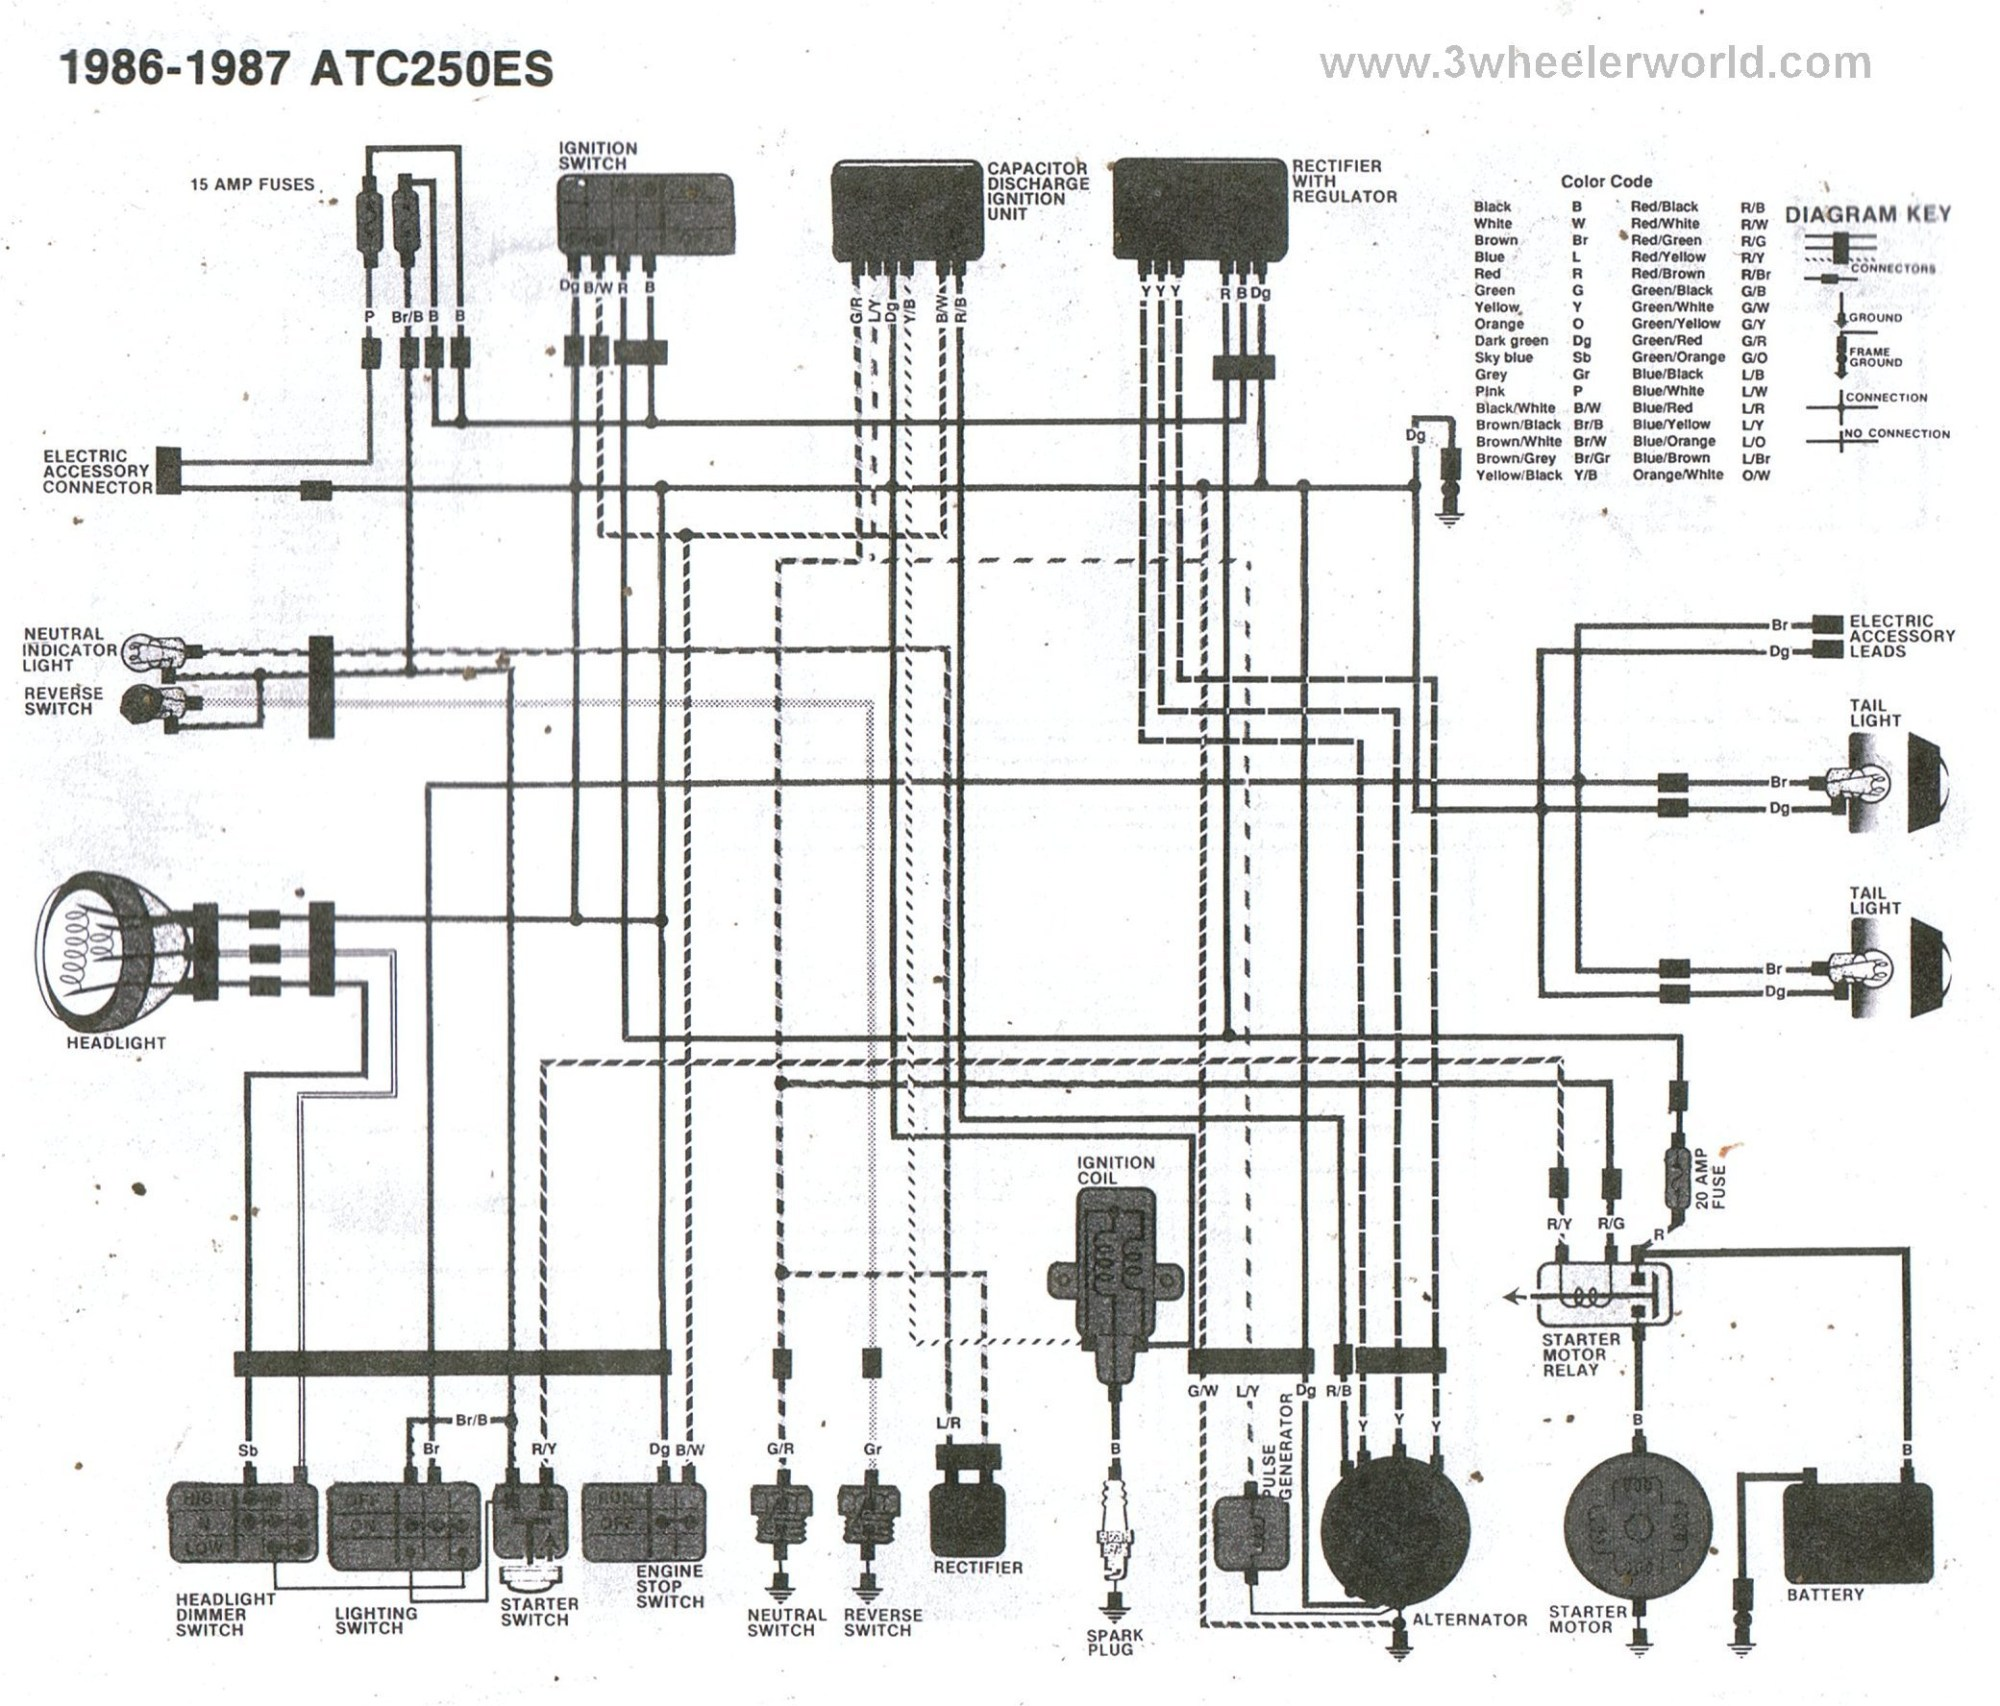 1986 Kawasaki Bayou 300 Ignition Wiring Diagram - on a ... on